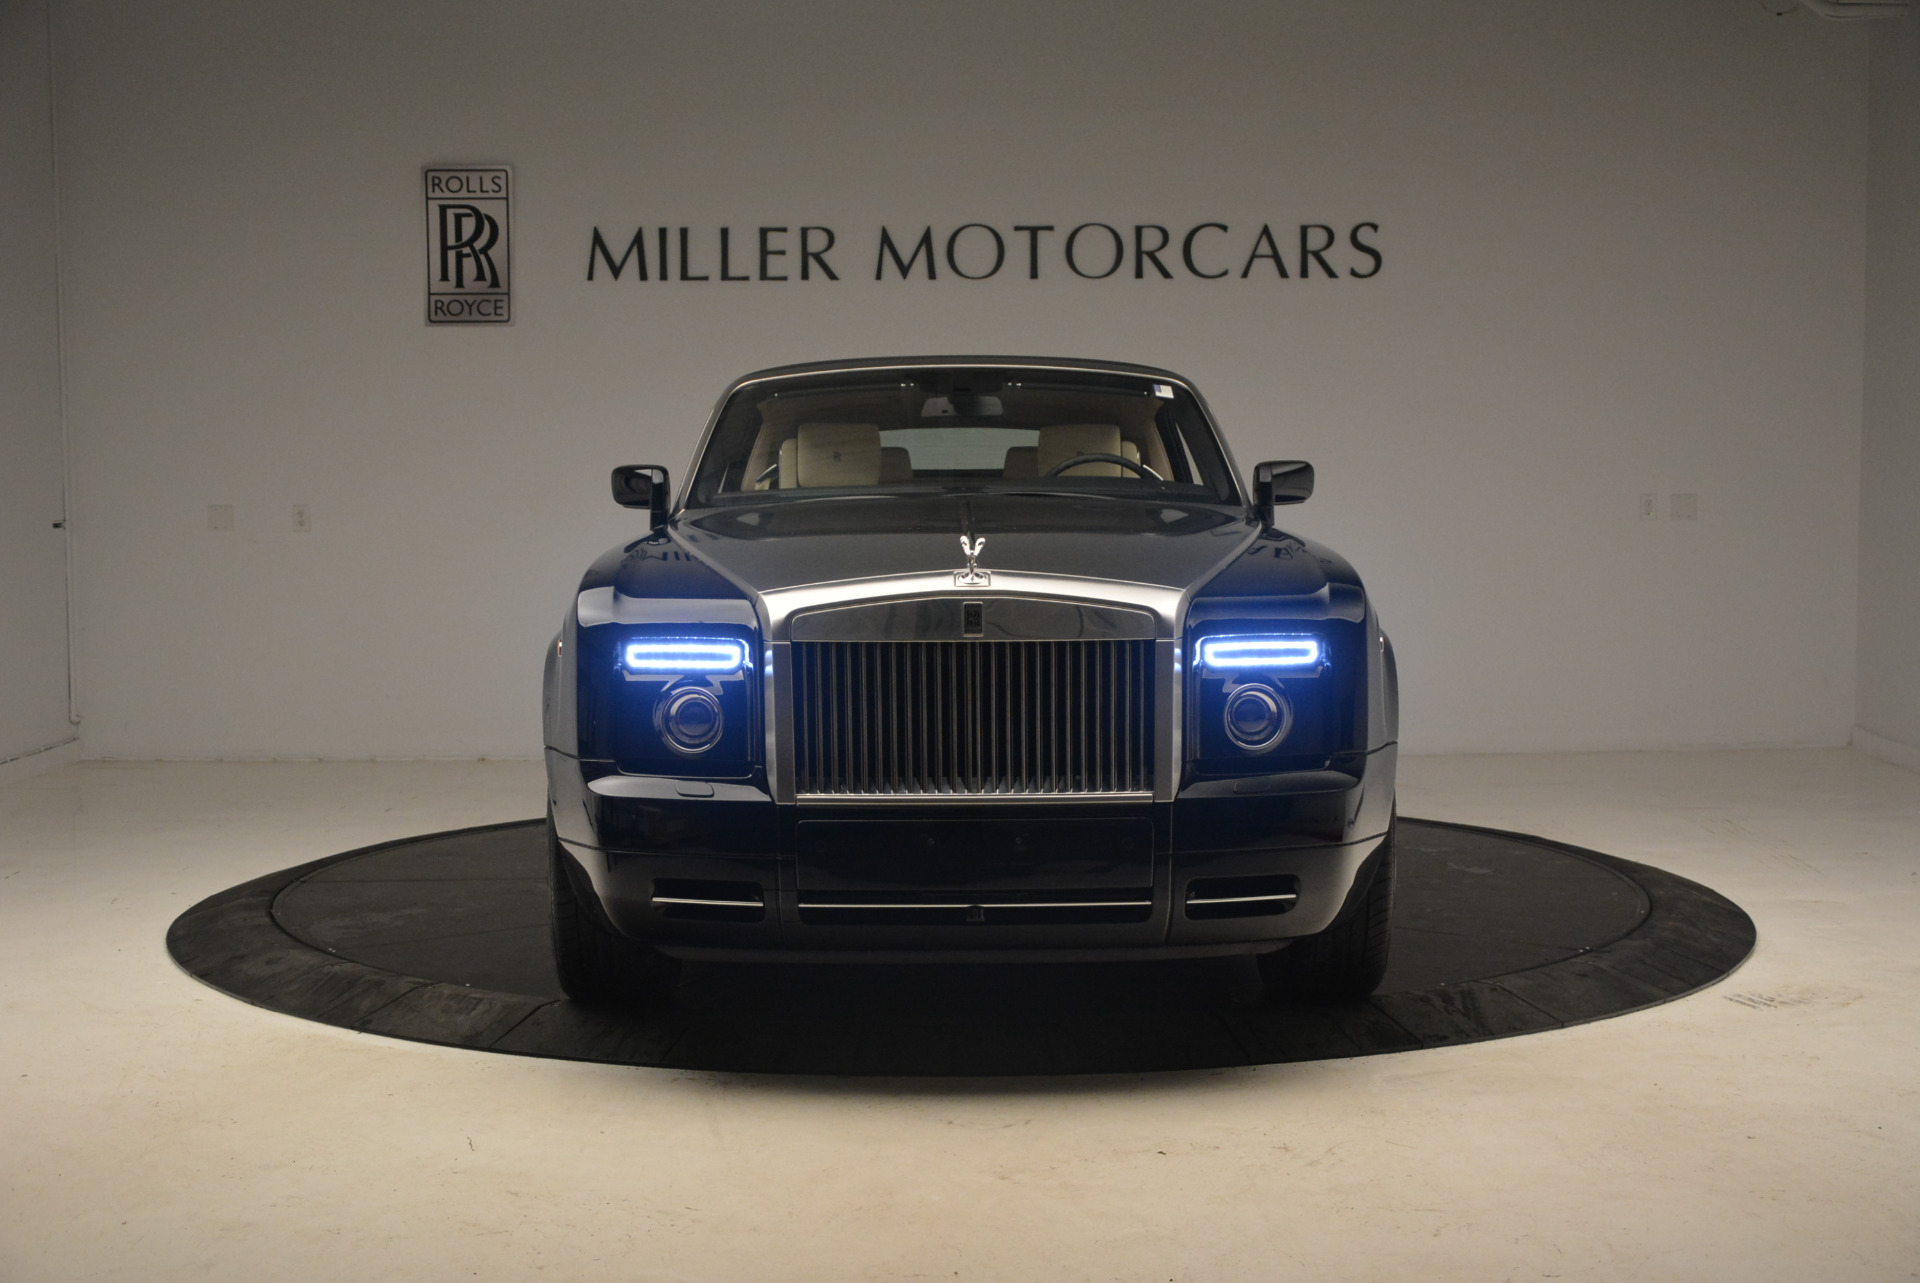 Used 2009 Rolls-Royce Phantom Drophead Coupe  For Sale In Westport, CT 1792_p25